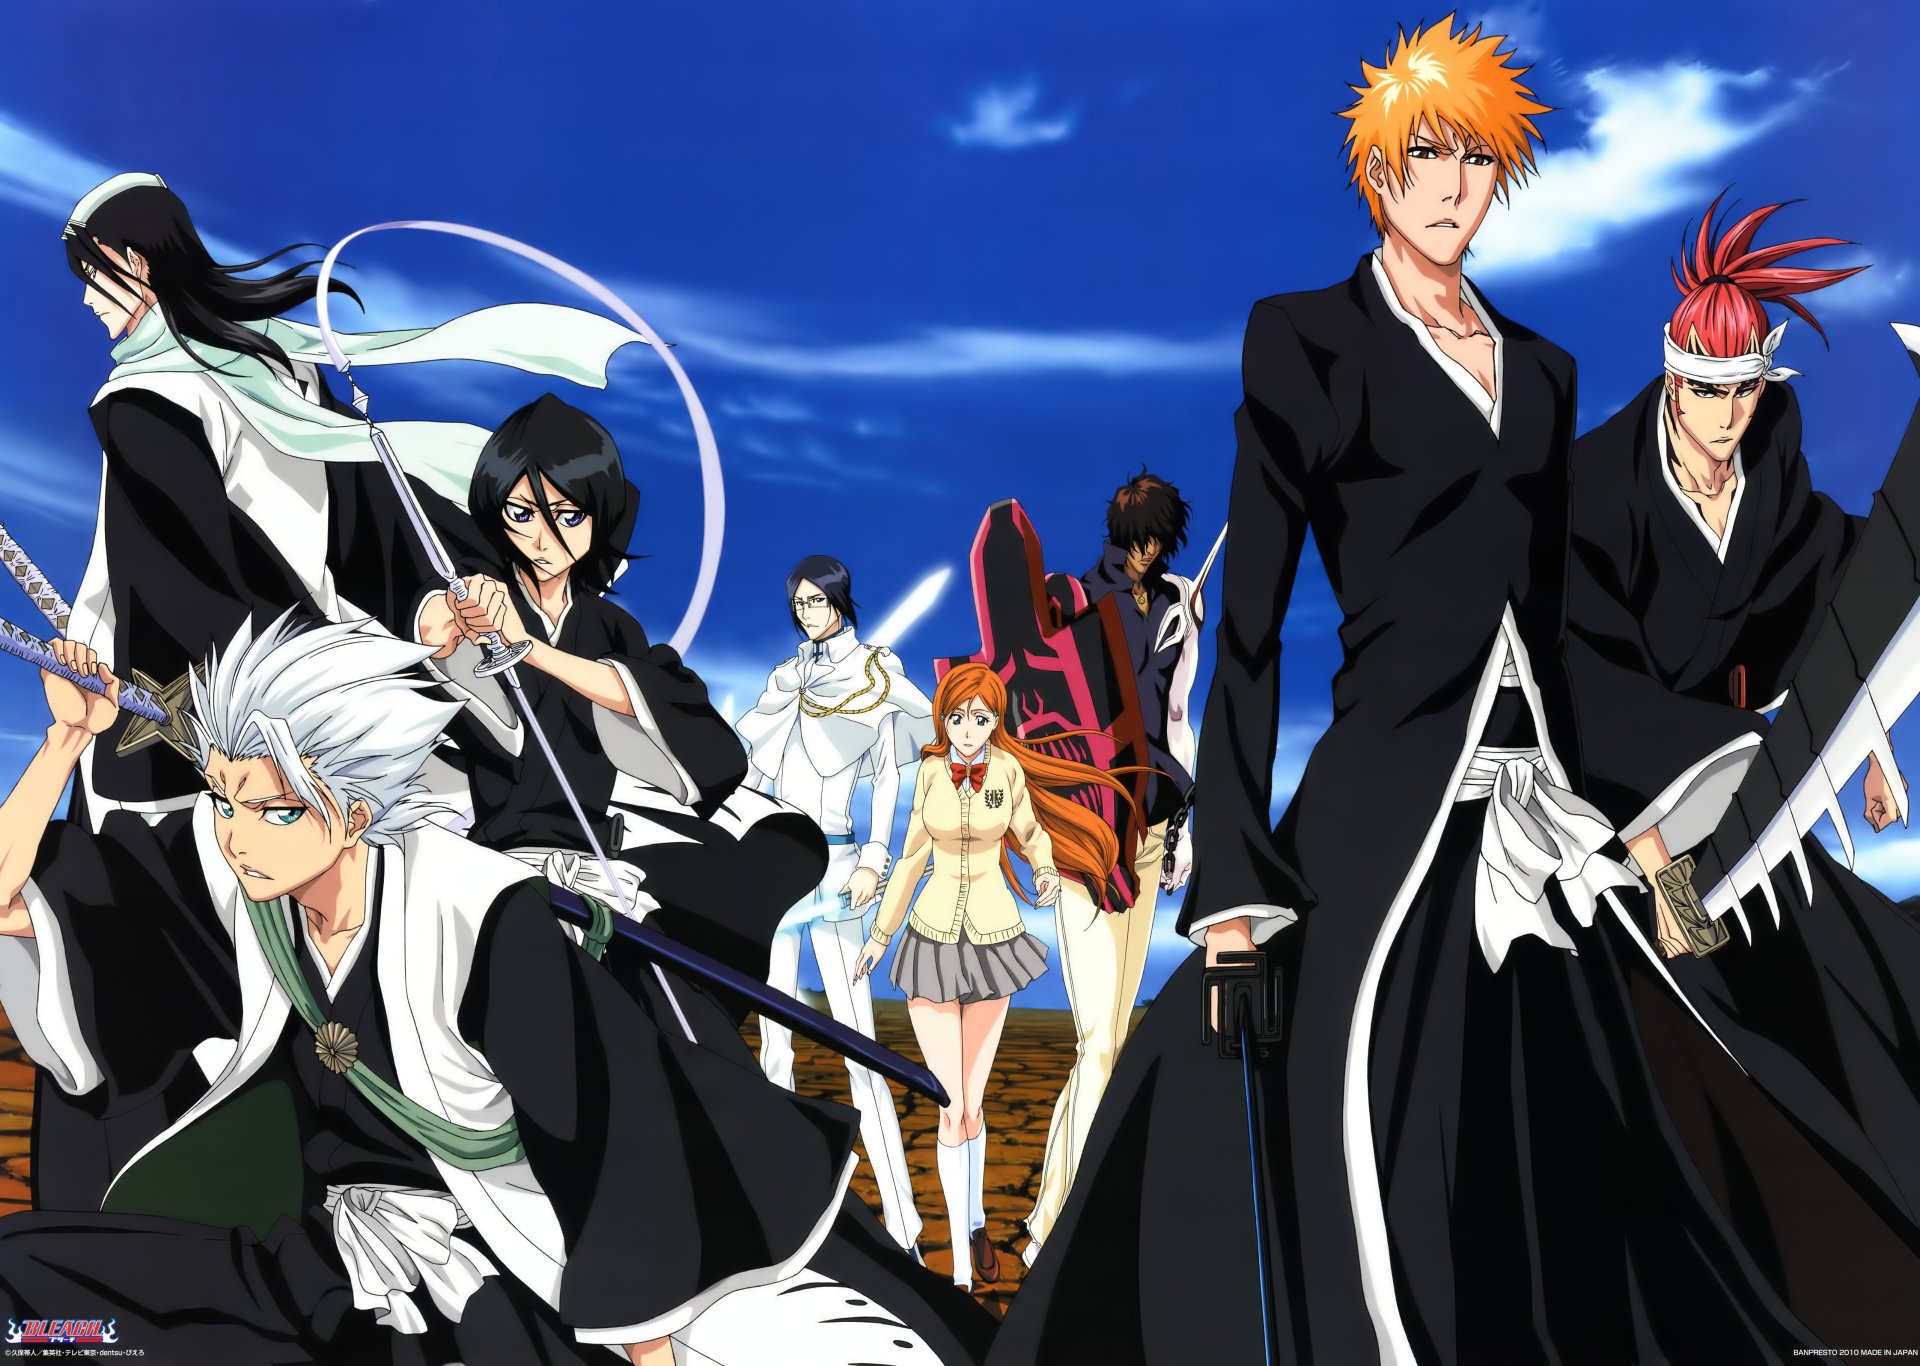 Anime - Bleach  Ichigo Kurosaki Renji Abarai Byakuya Kuchiki Sado Yasutora Orihime Inoue Rukia Kuchiki Tōshirō Hitsugaya Katana Weapon Long Hair Short Hair Orange Hair White Hair Black Hair Ponytail Uryu Ishida Wallpaper